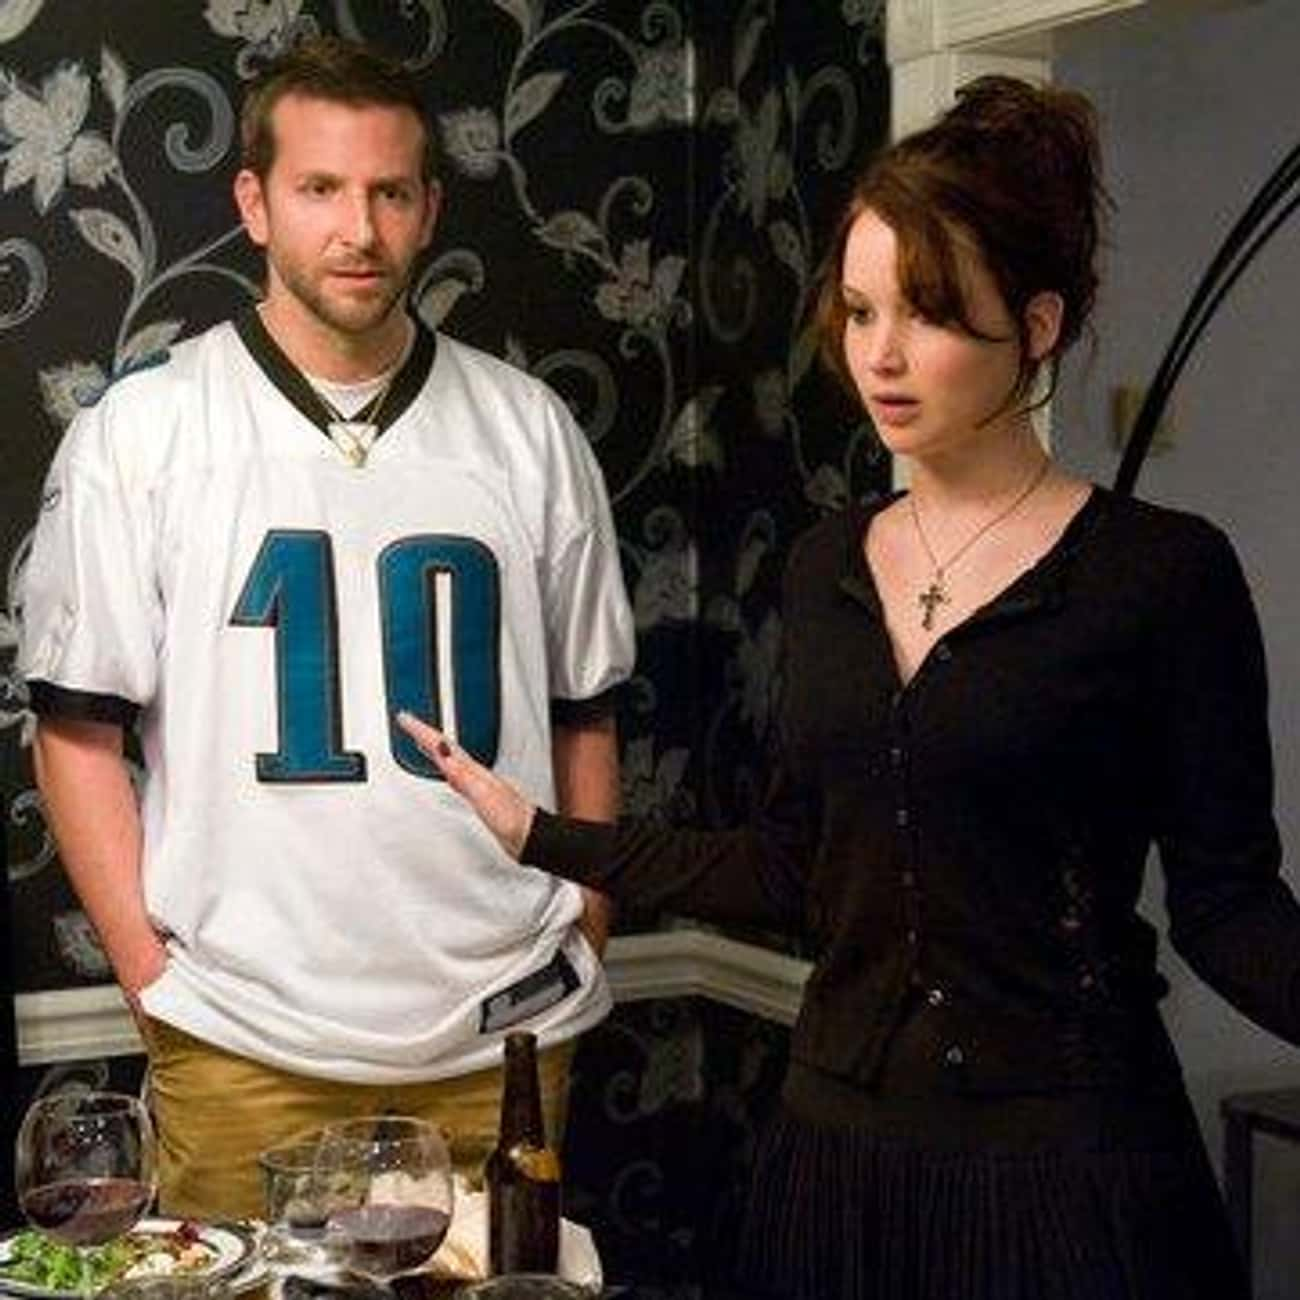 Dead Husband is listed (or ranked) 4 on the list Silver Linings Playbook Movie Quotes